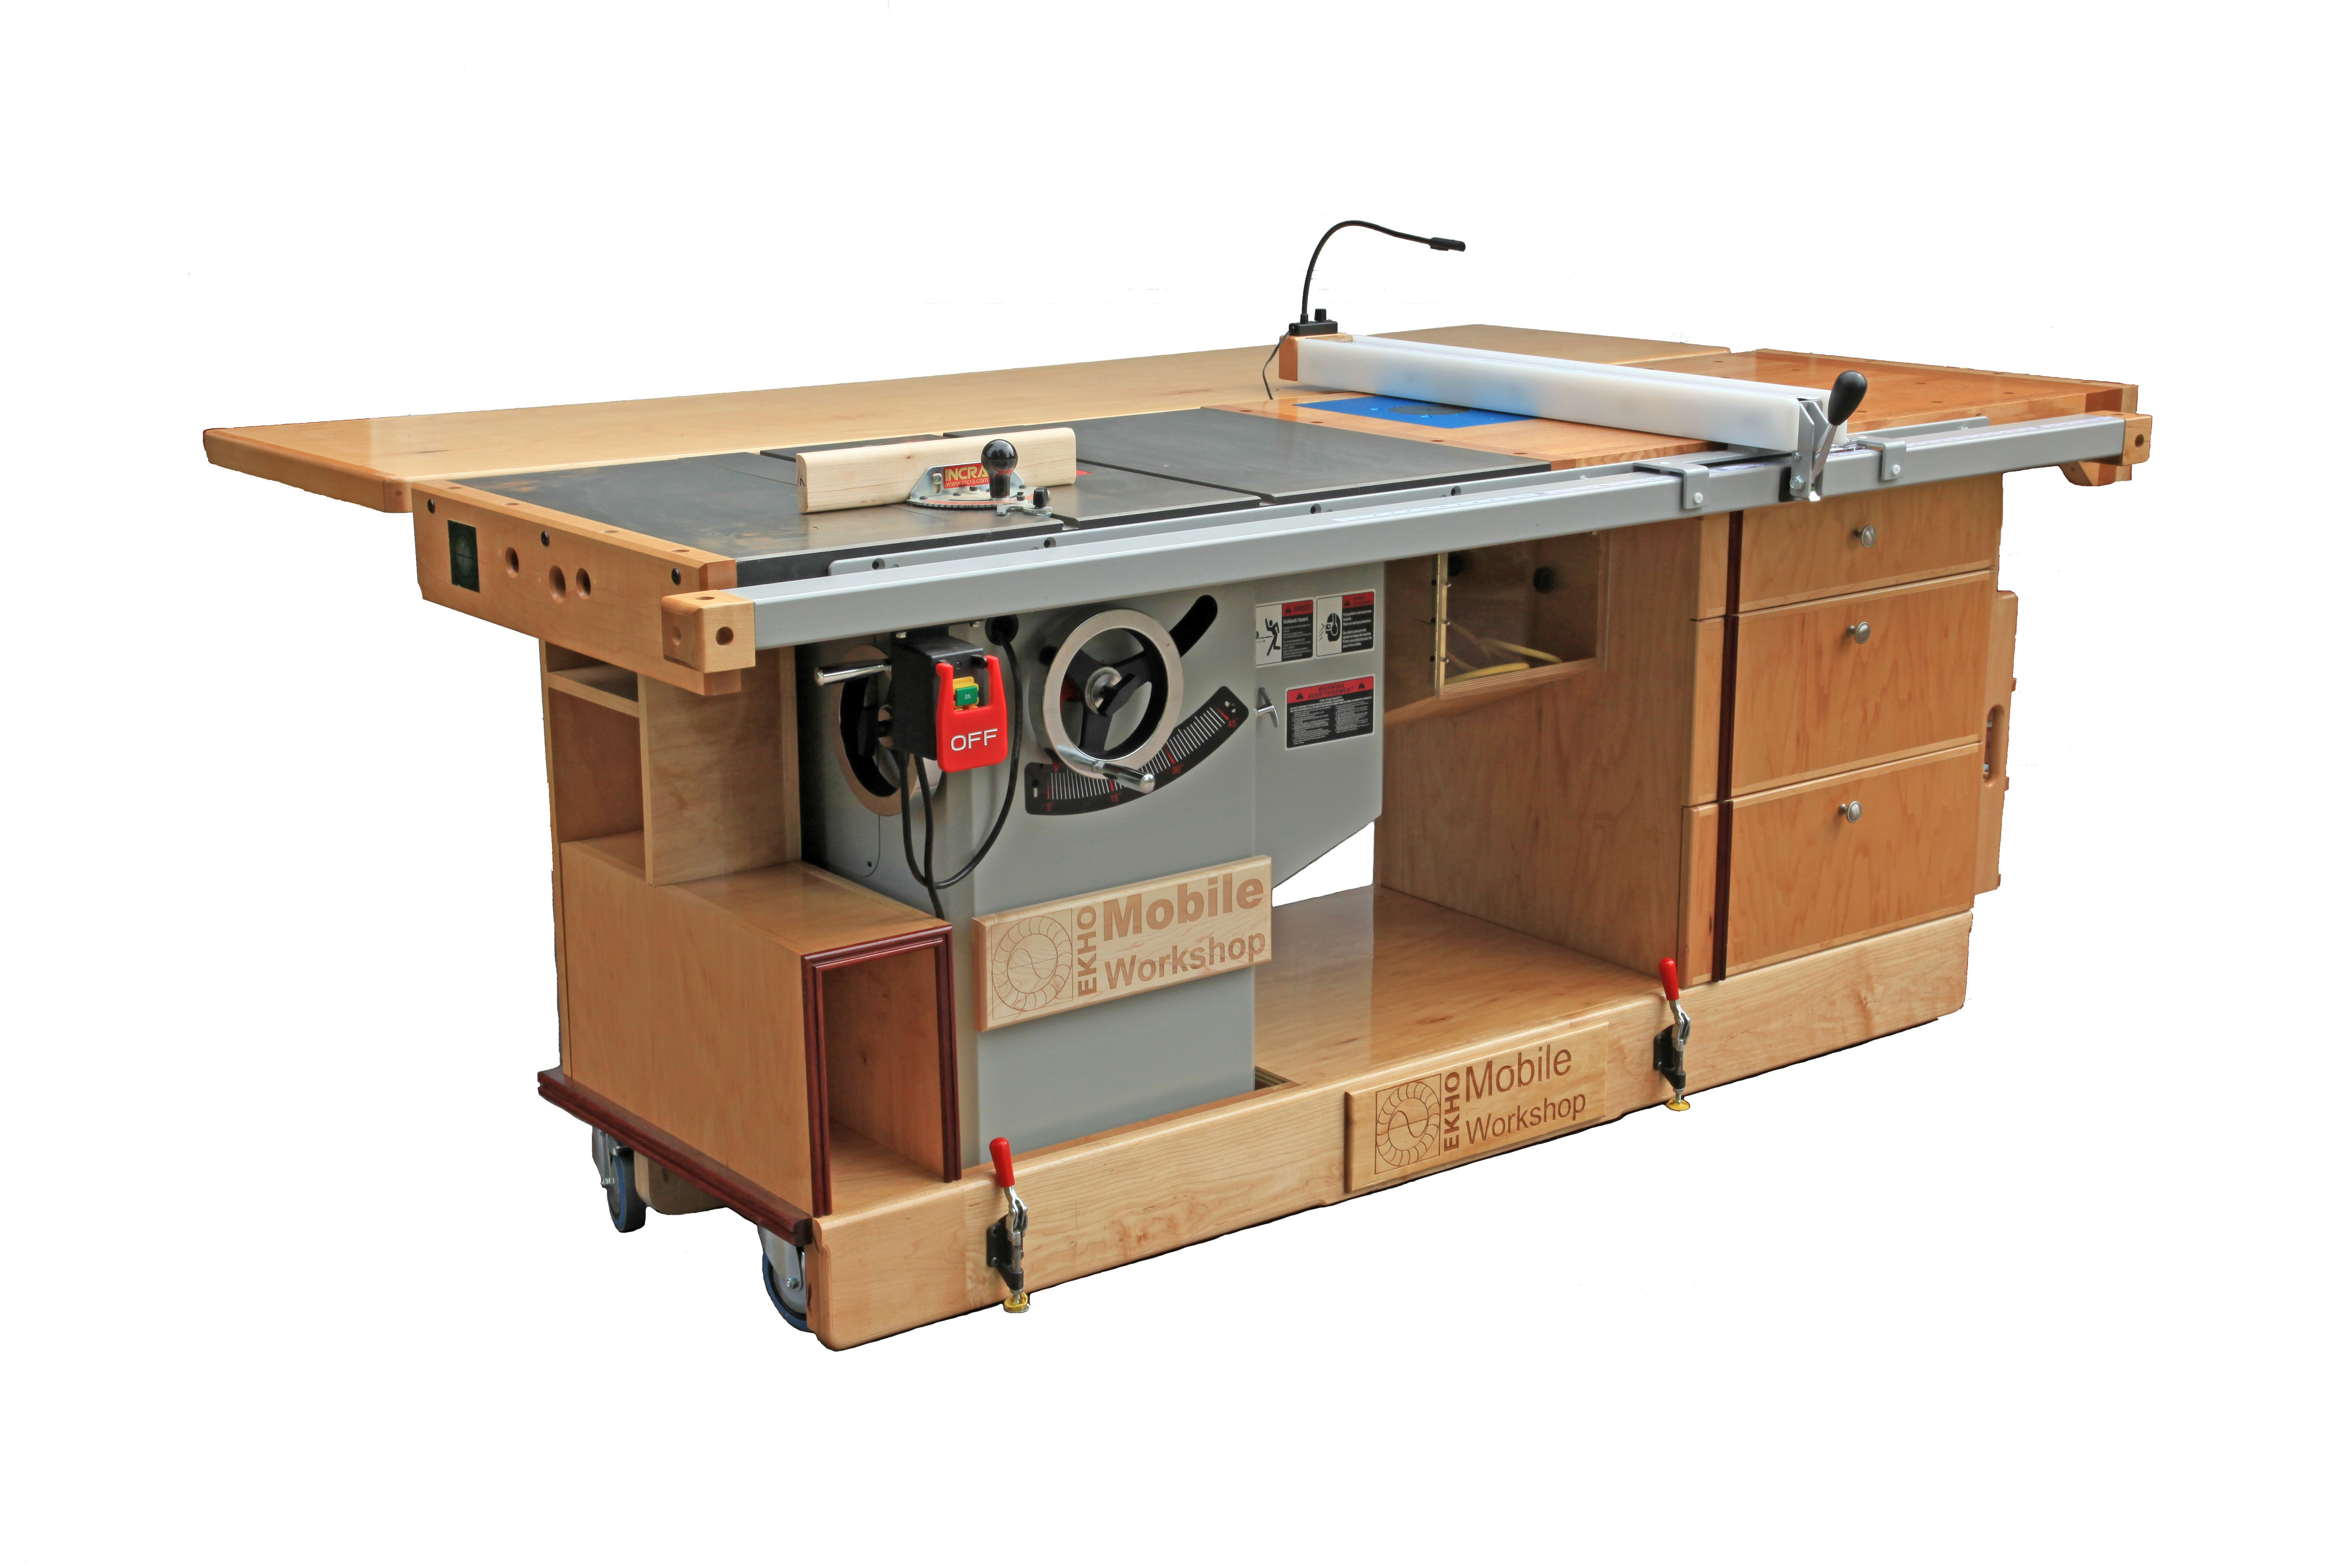 Ekho Mobile Workshop Portable Cabinet Saw And Router